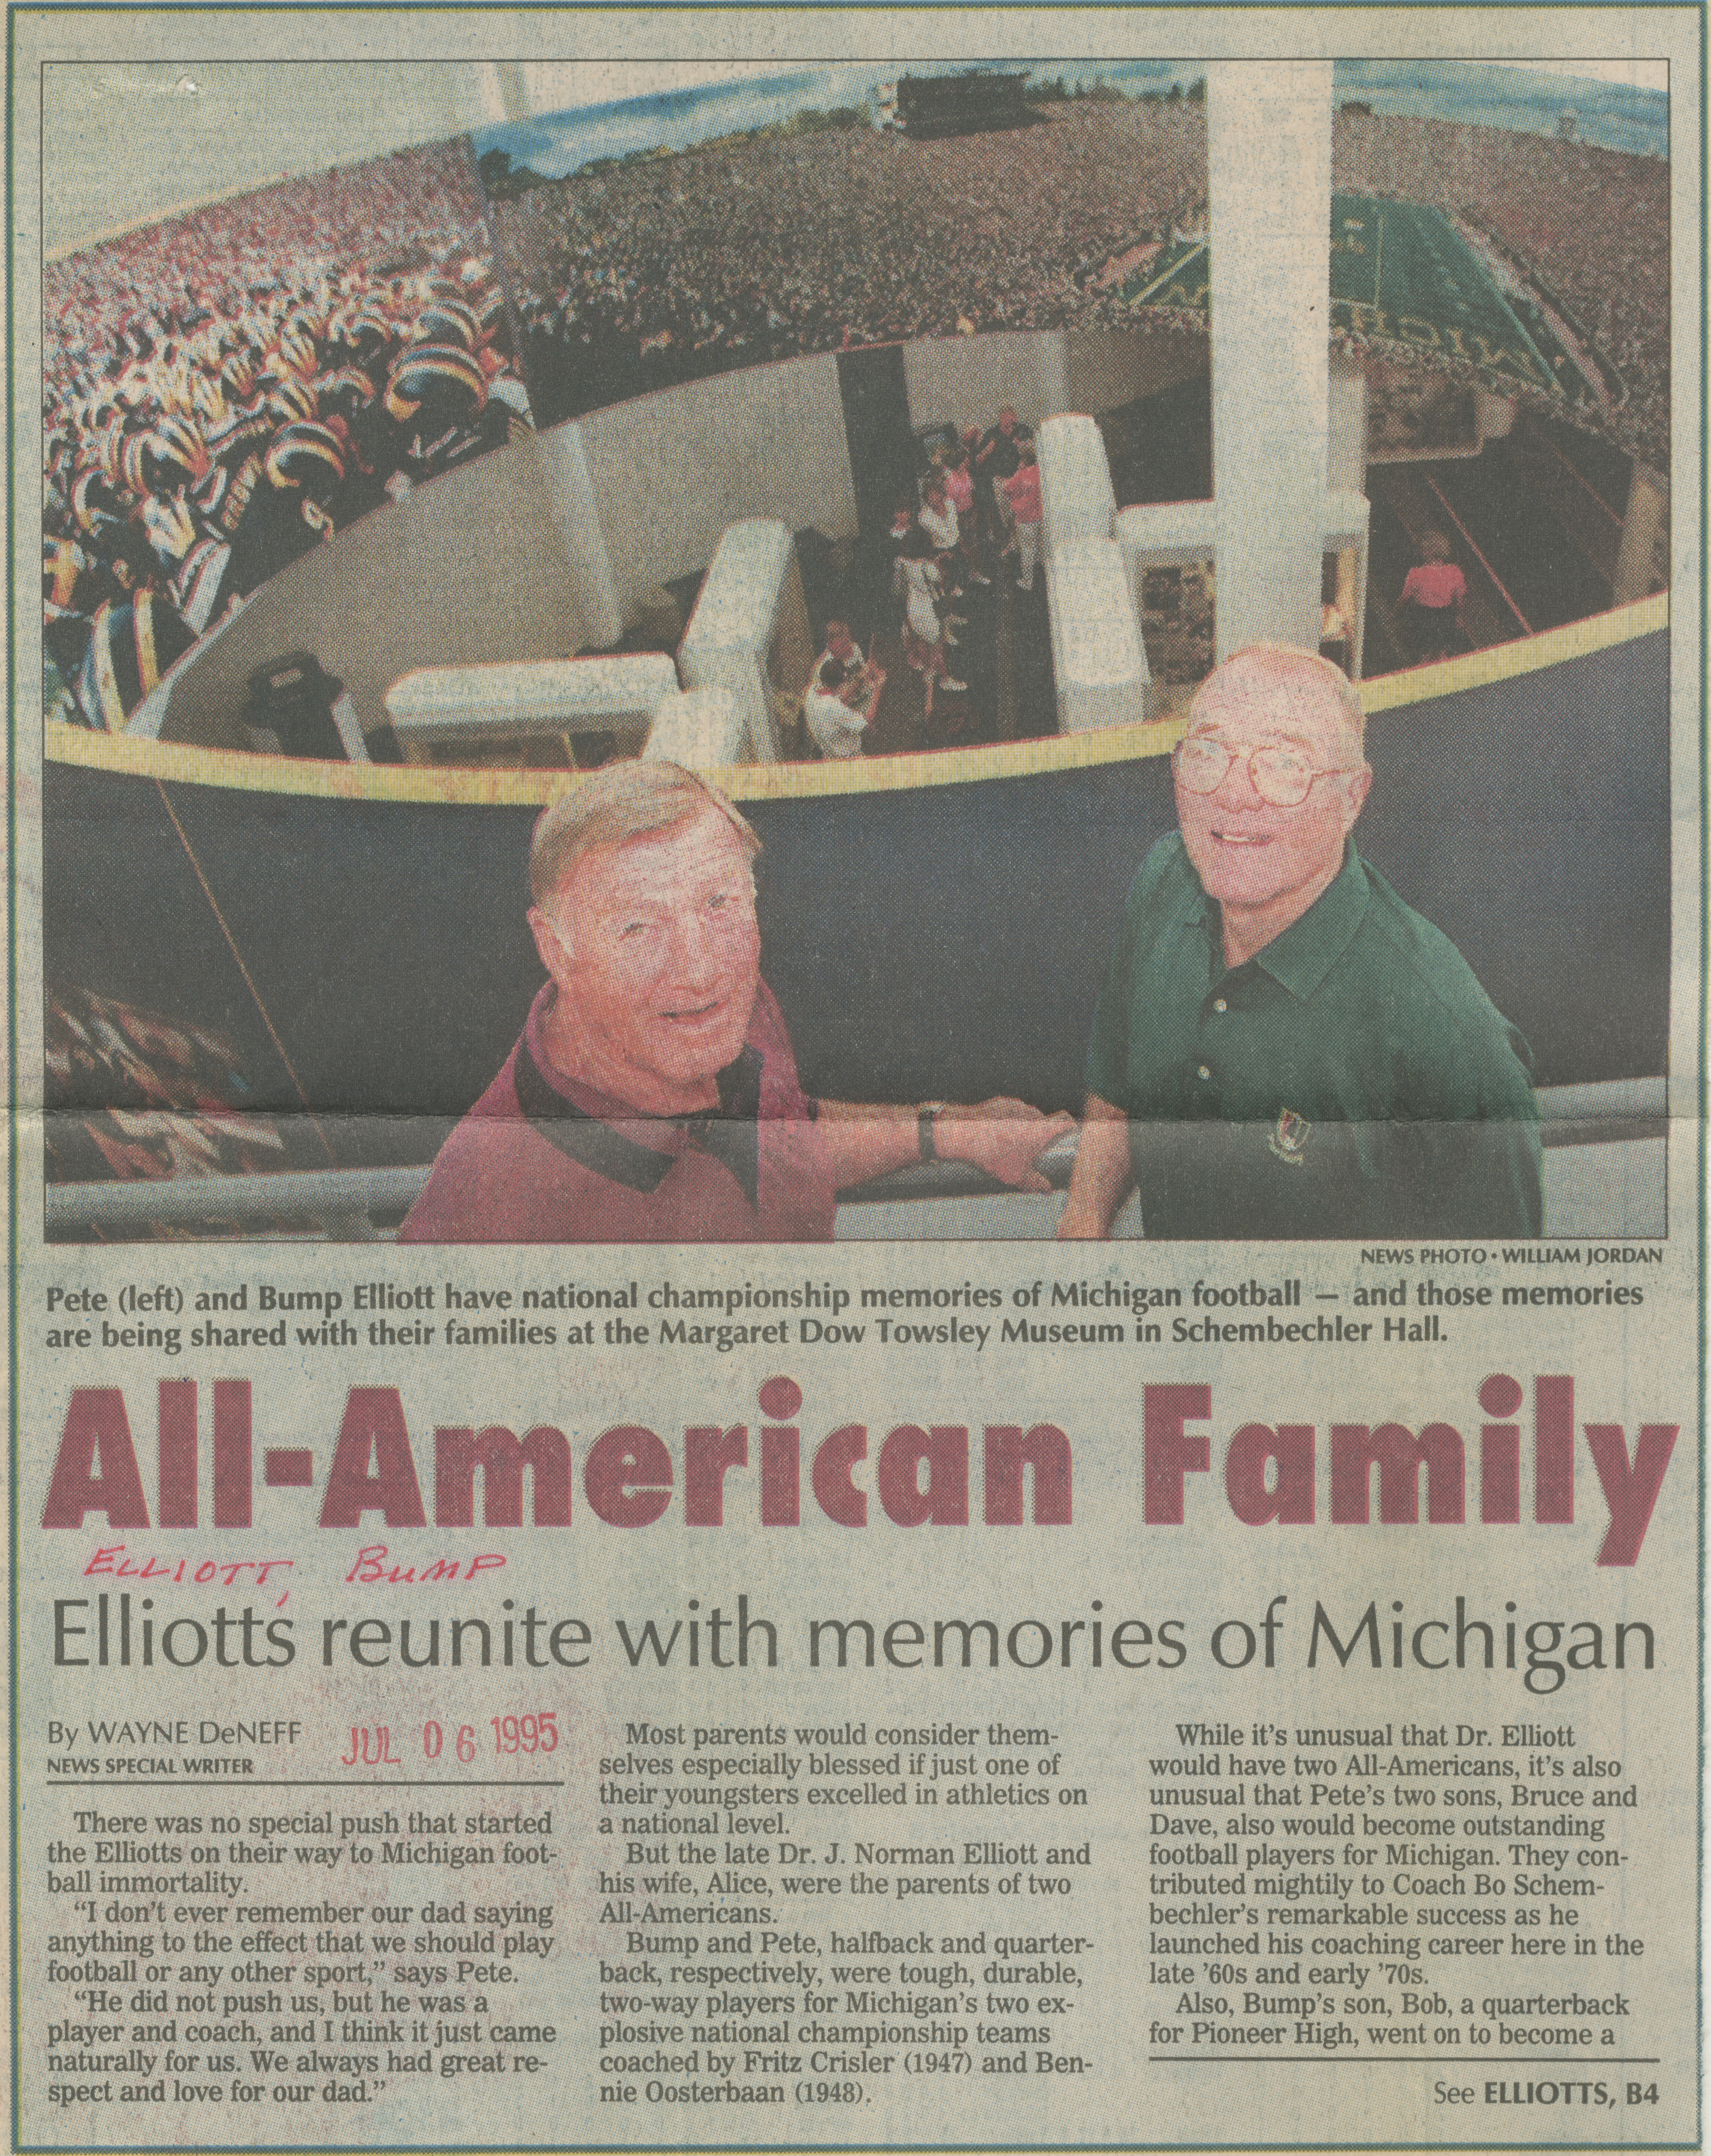 All-American Family image